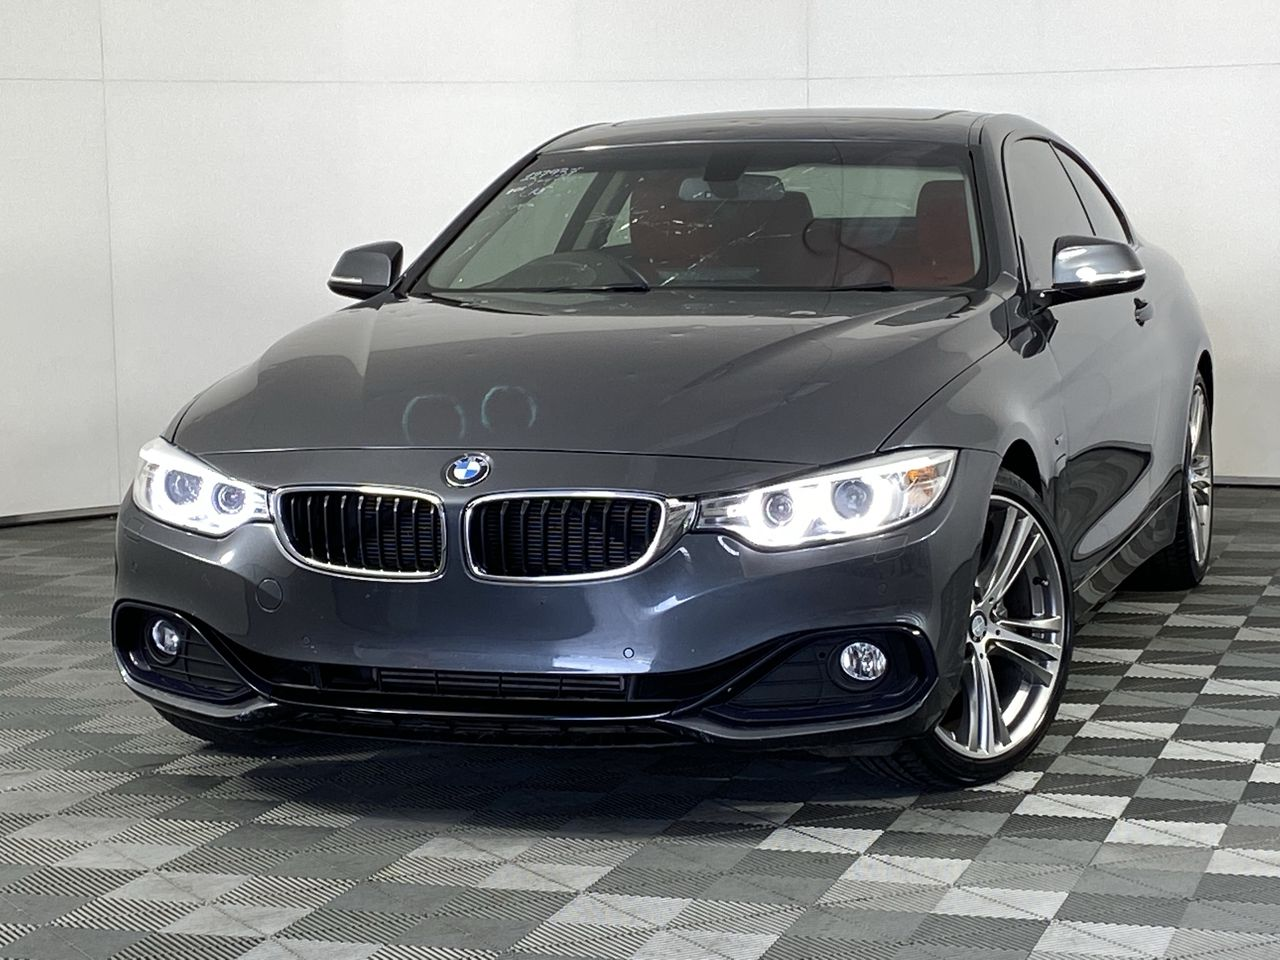 2013 BMW 428i F32 Automatic - 8 Speed Coupe (WOVR Inspected)